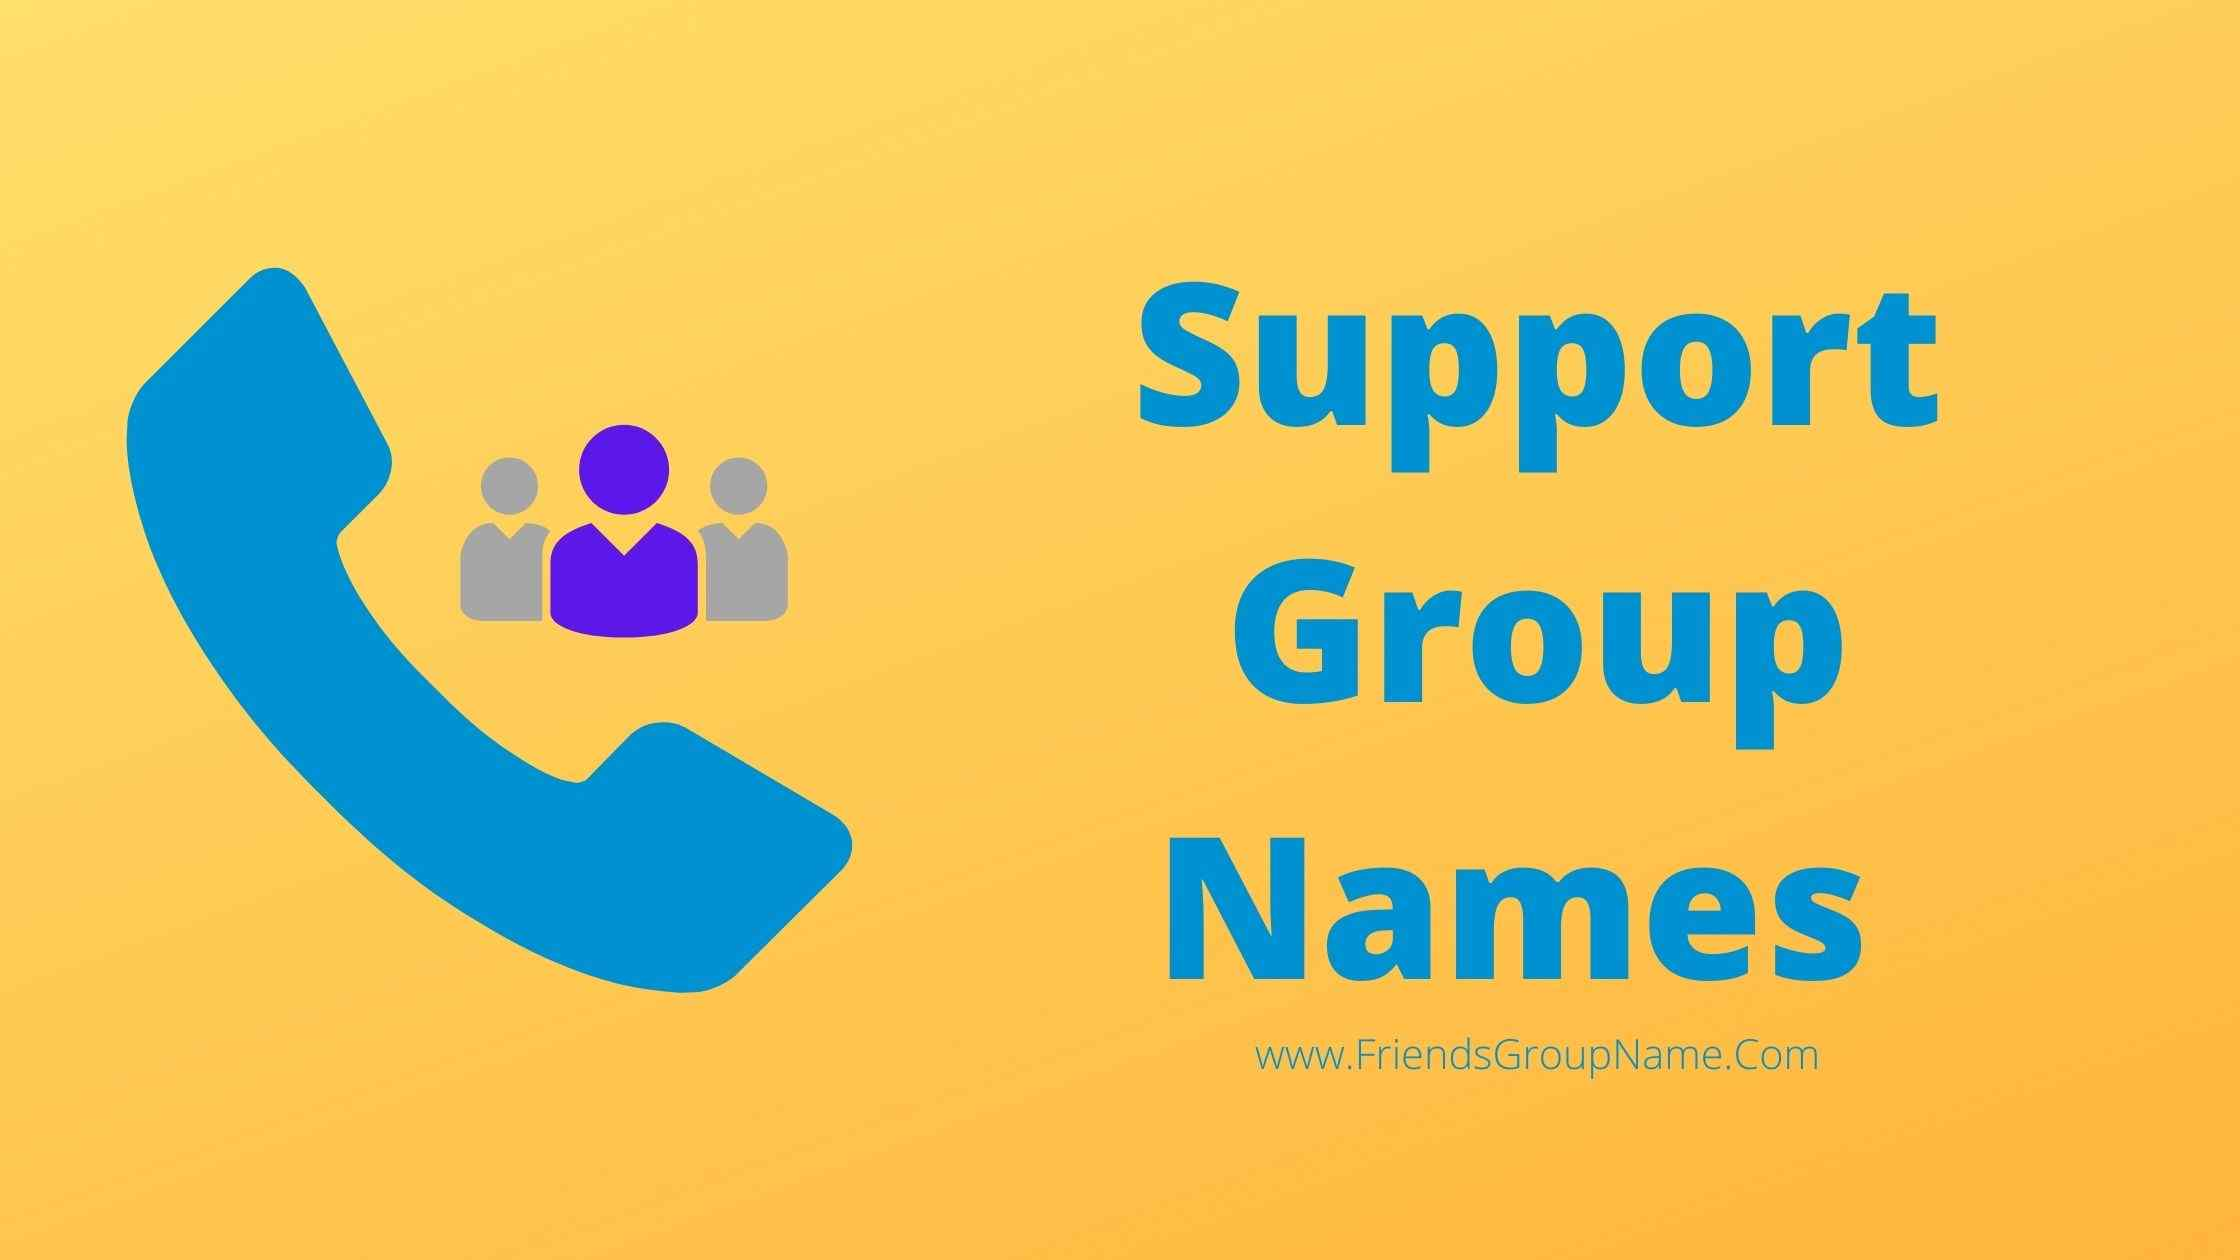 Support Group Names